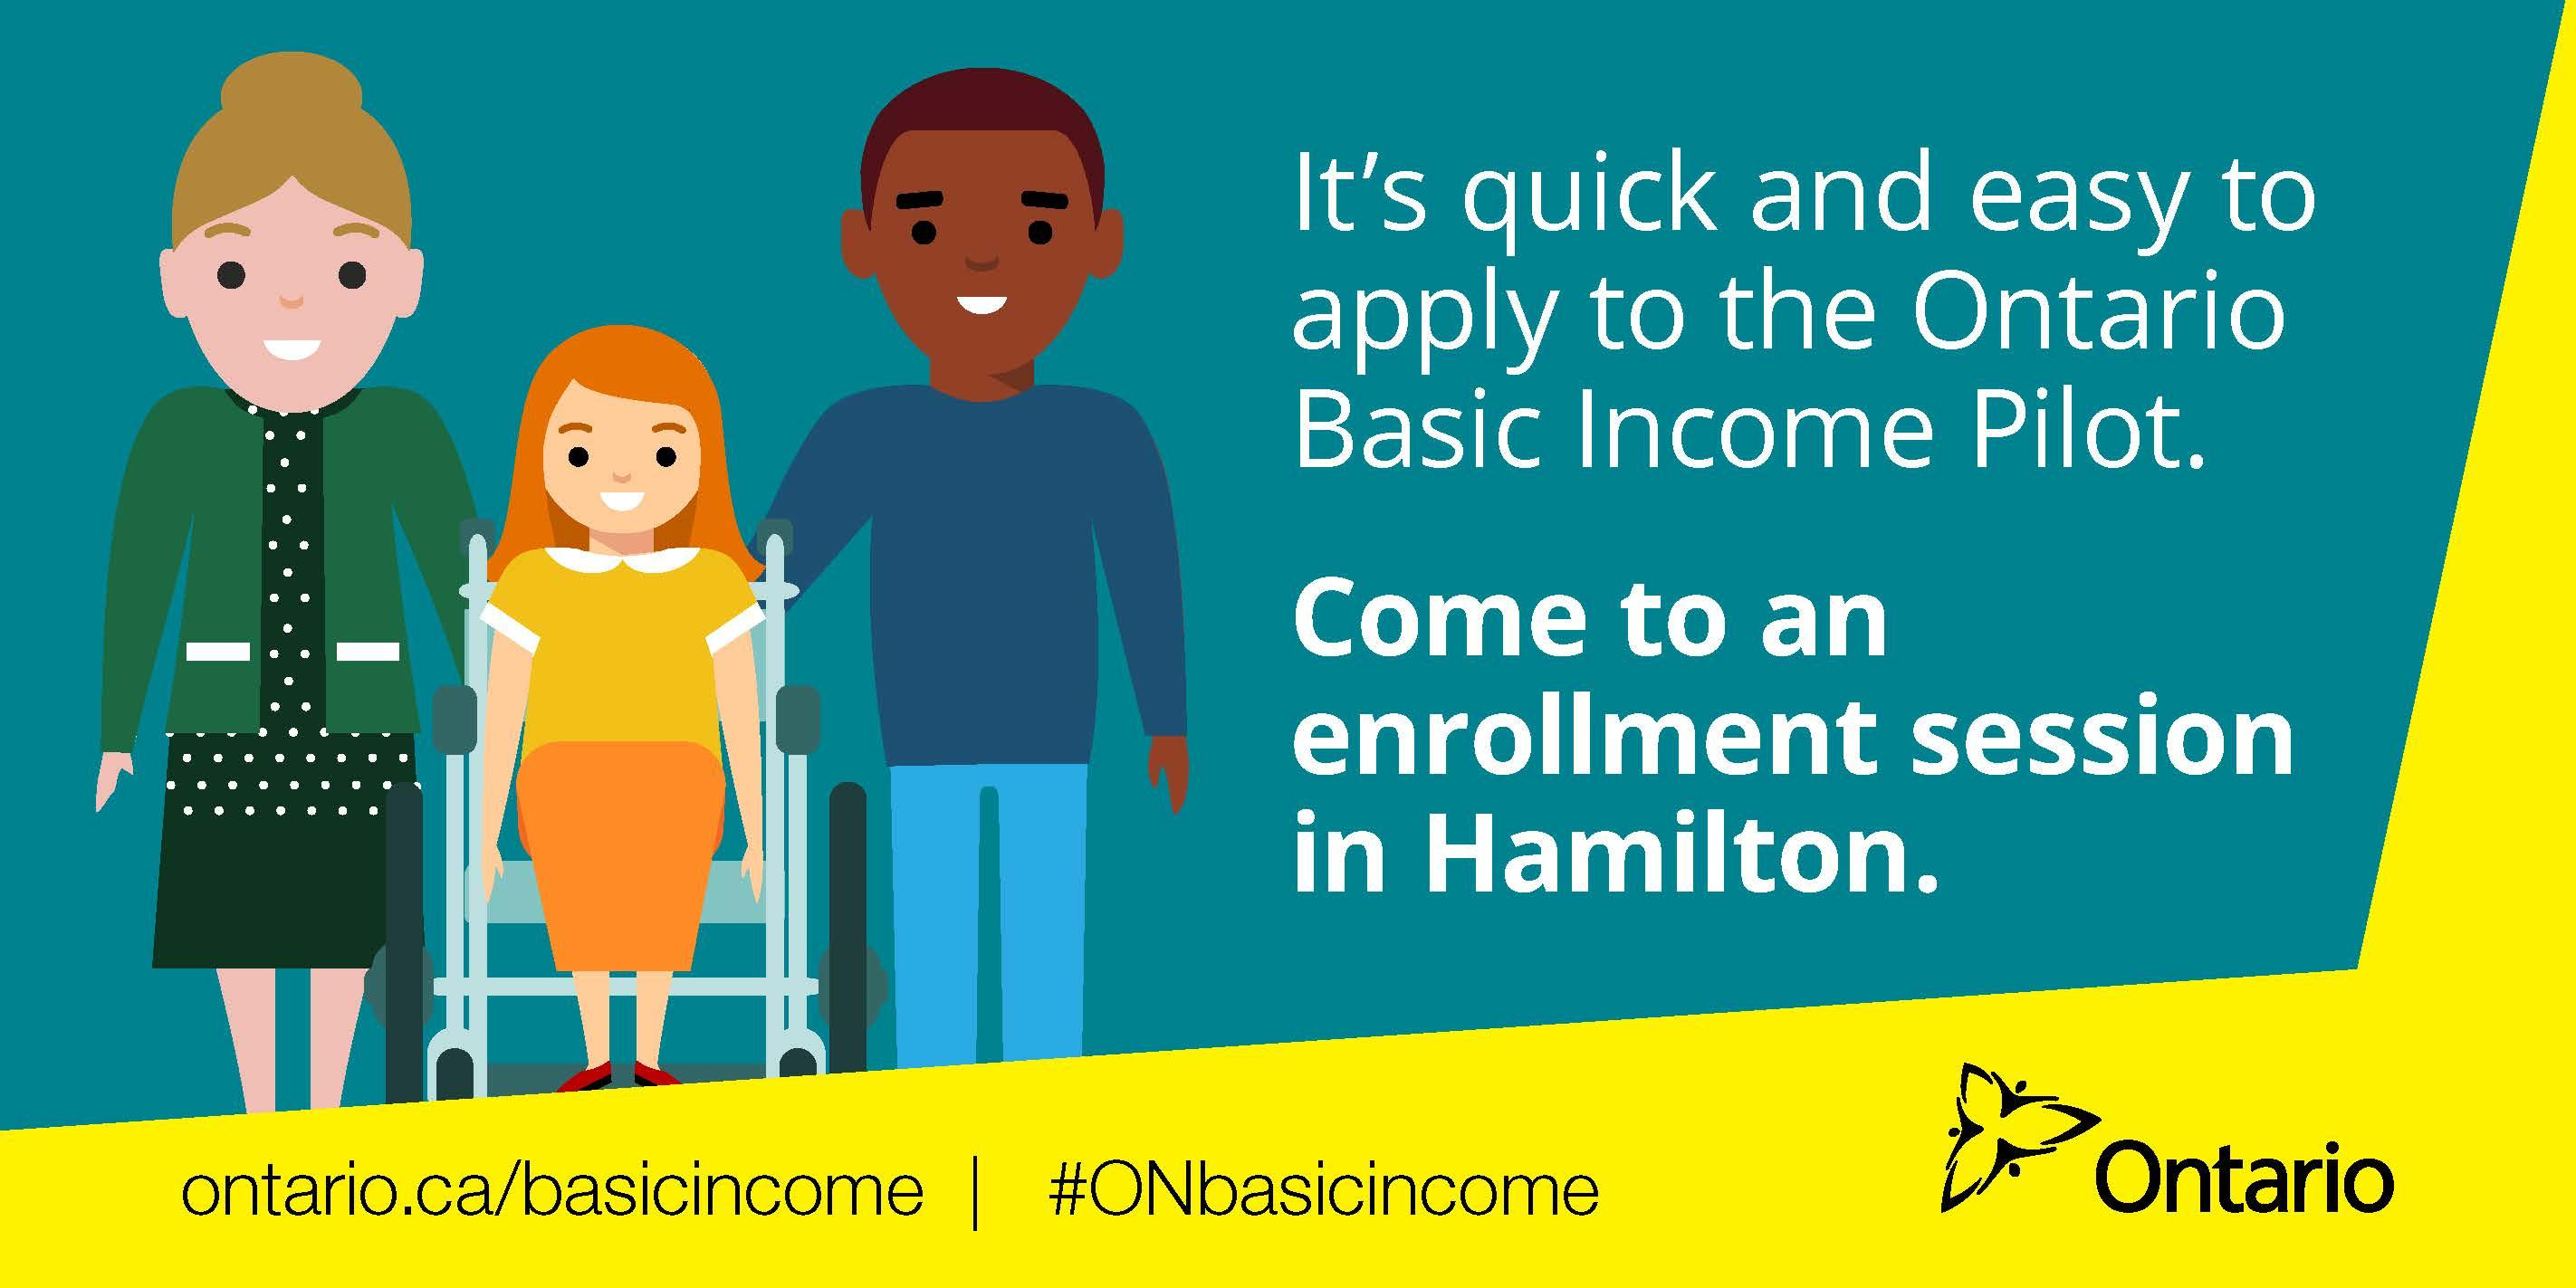 Ontario Basic Income Pilot Enrollment Session